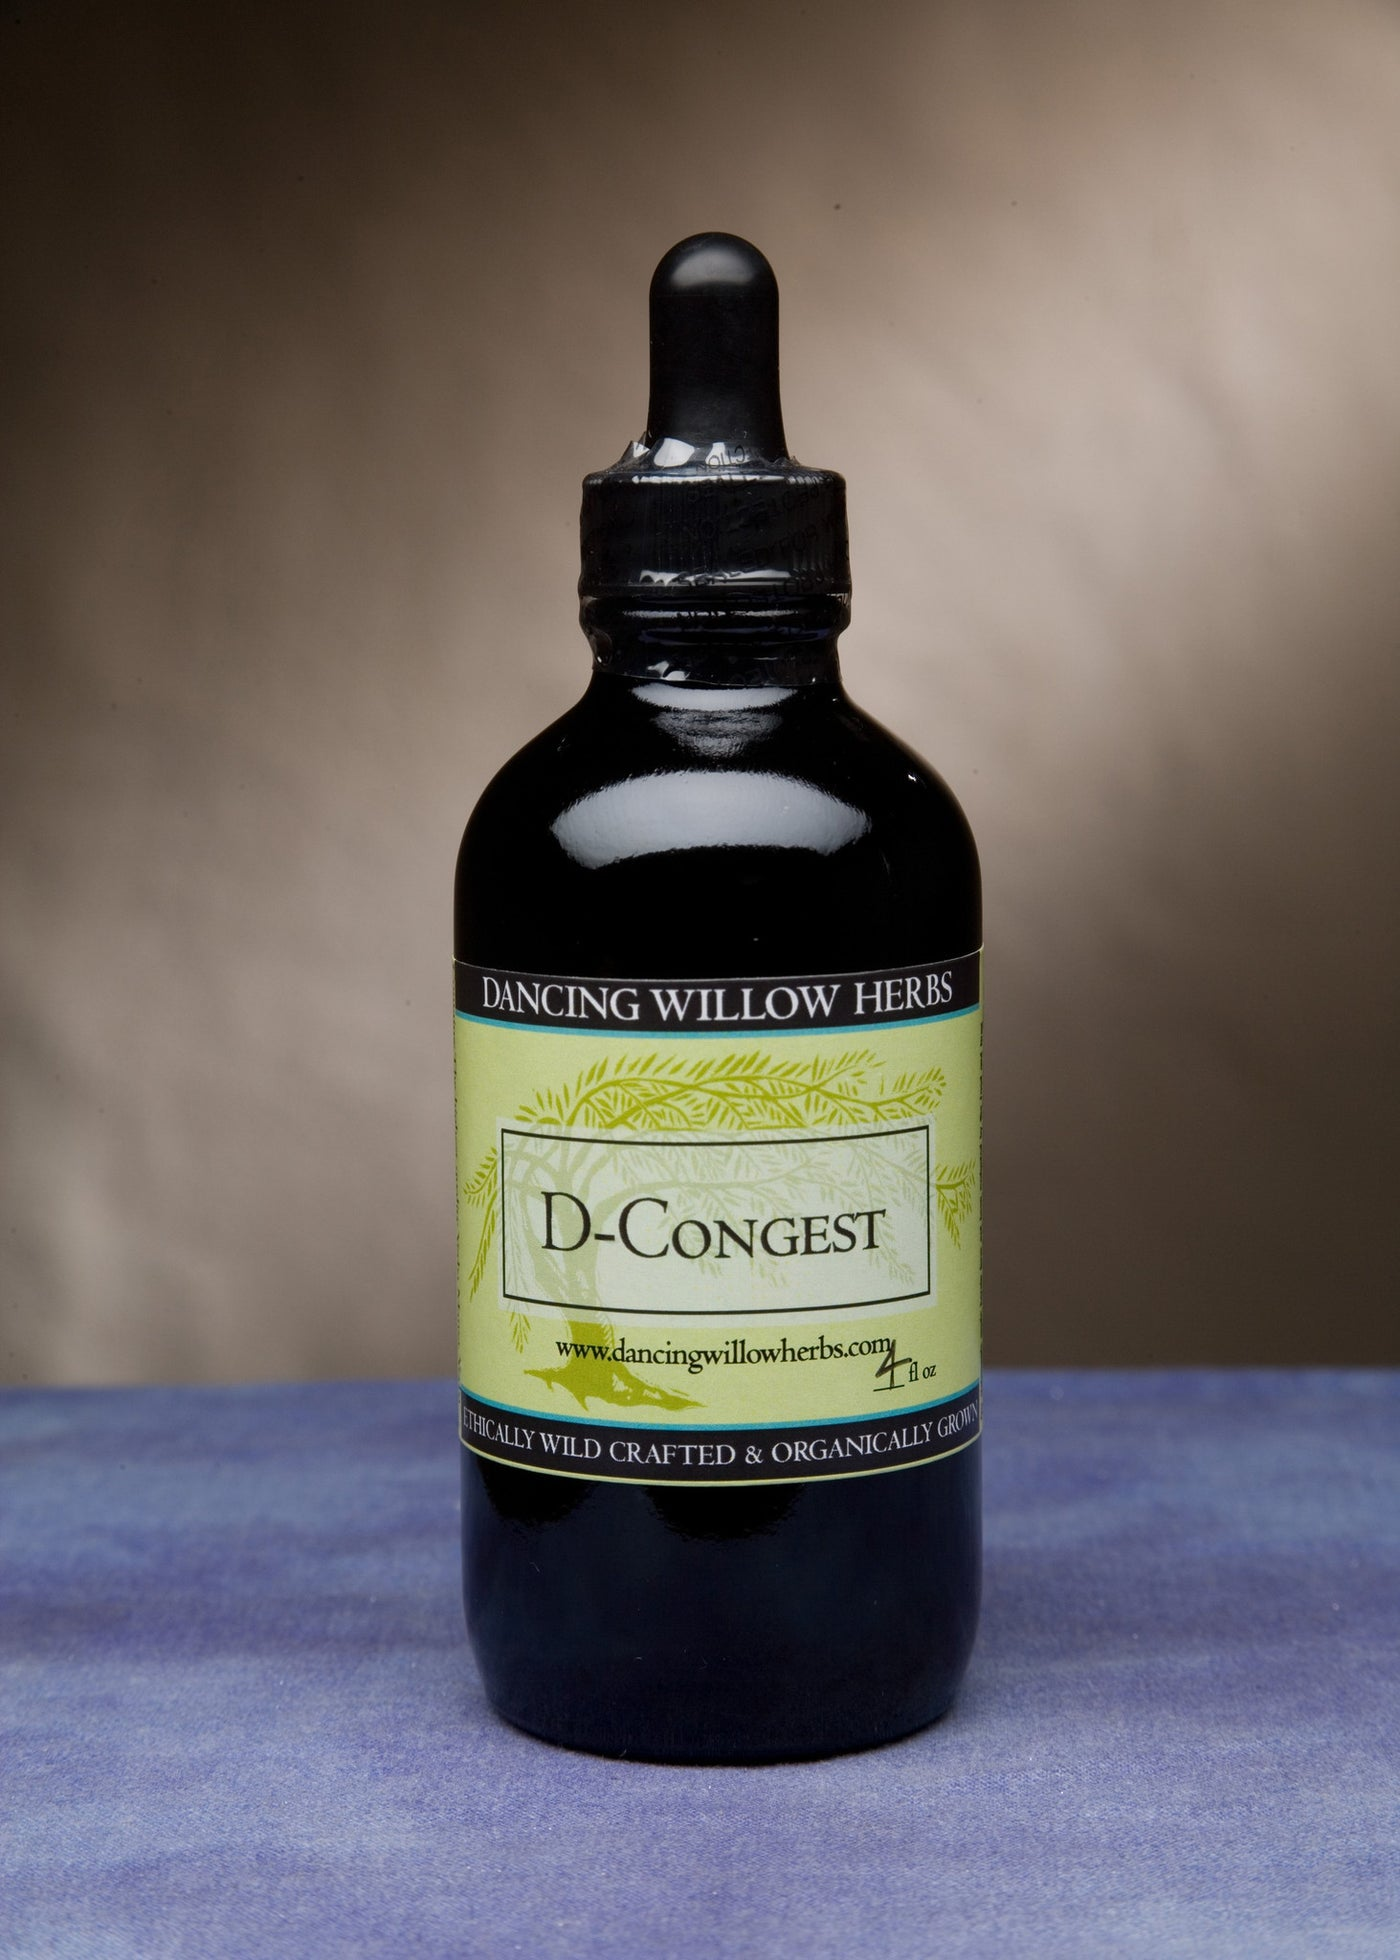 D-Congest - Dancing Willow Herbs Herbal Formulas - herbal formulas